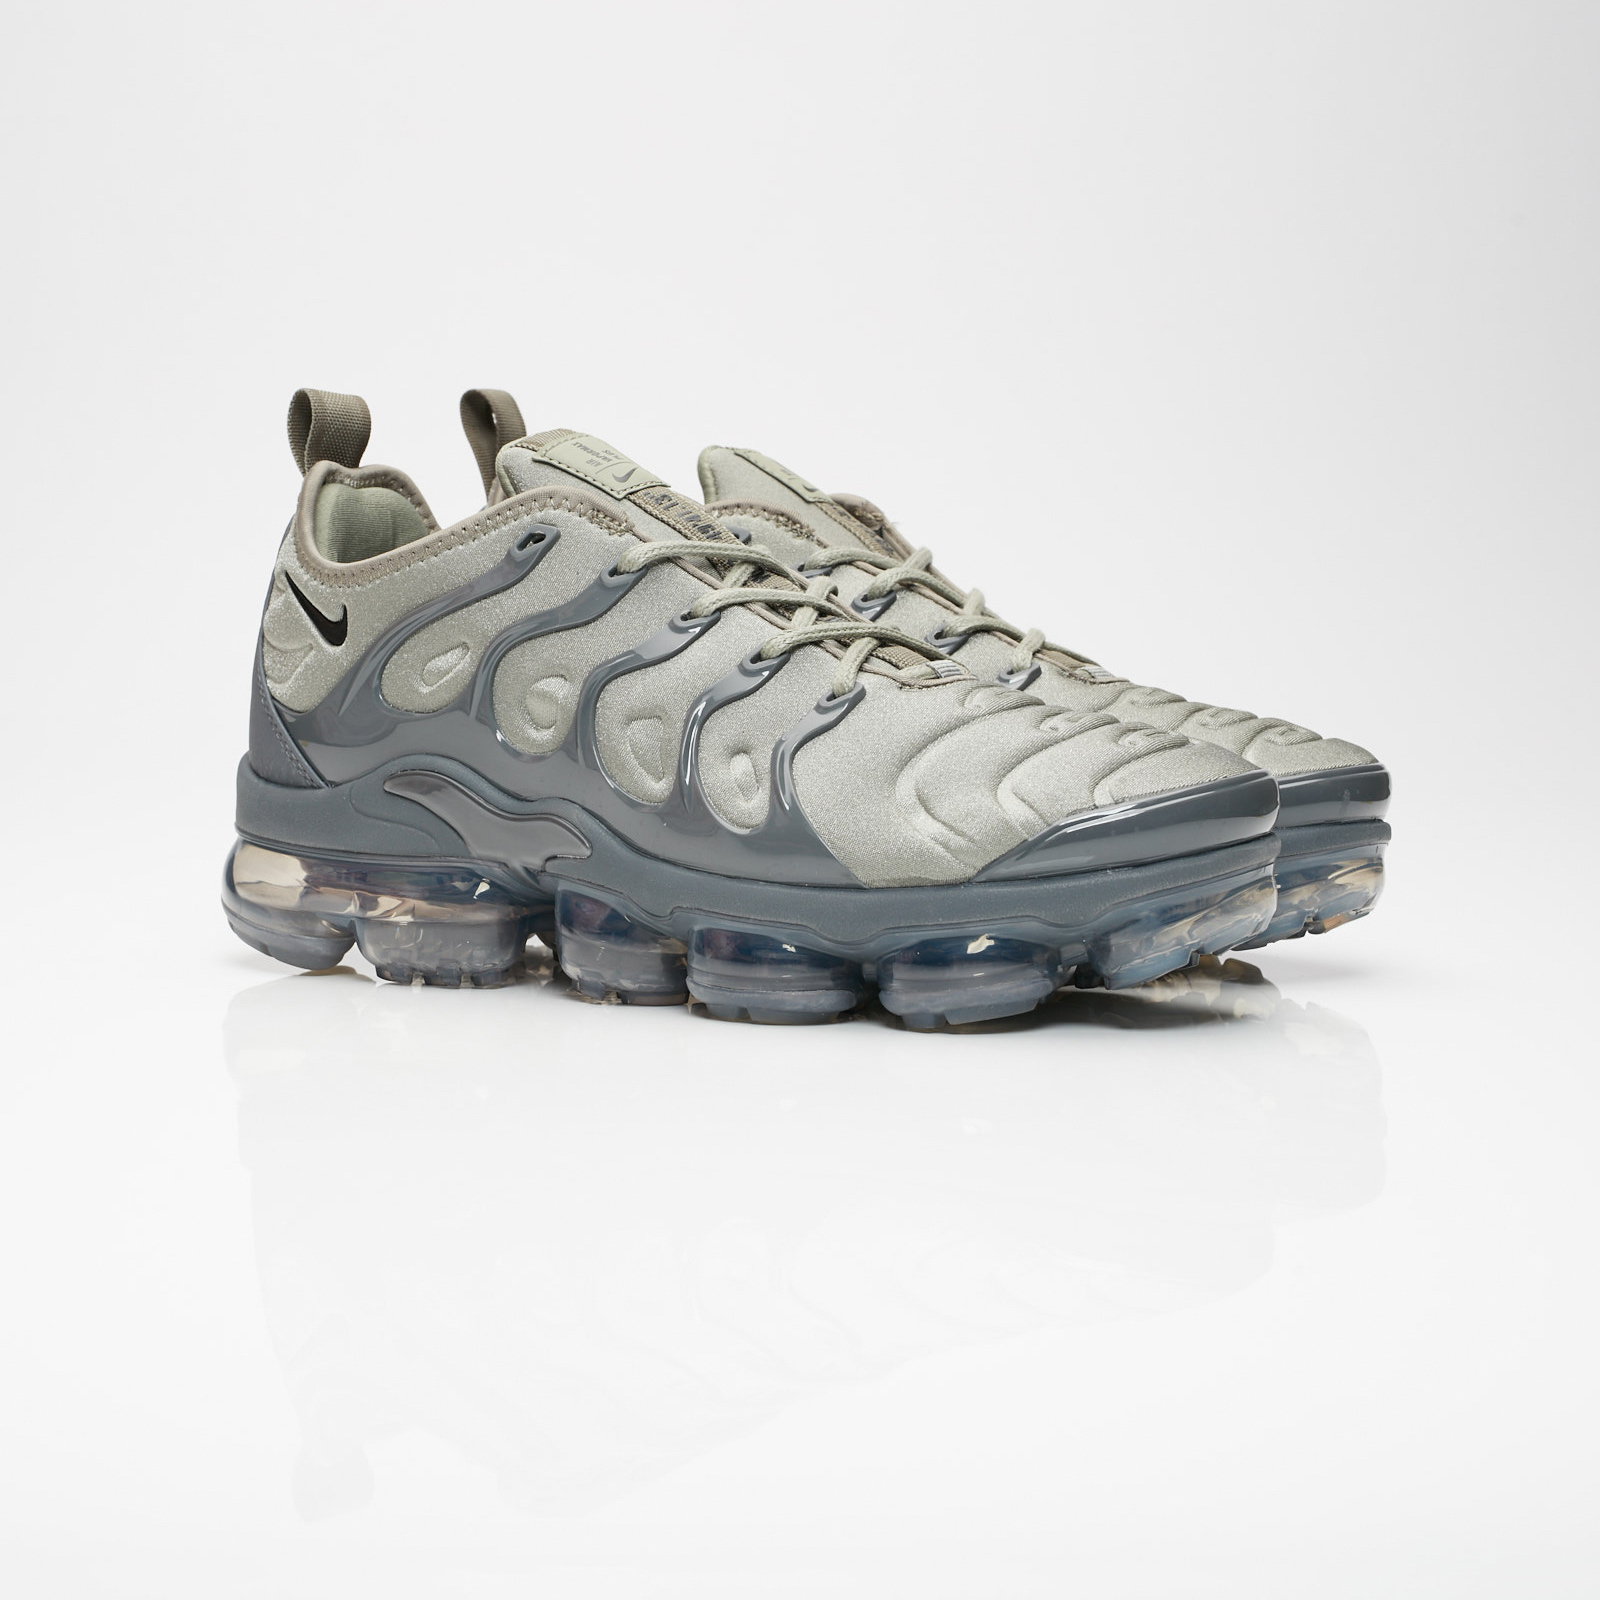 54a16aa72ff4d1 Nike Air Vapormax Plus - At5681-001 - Sneakersnstuff